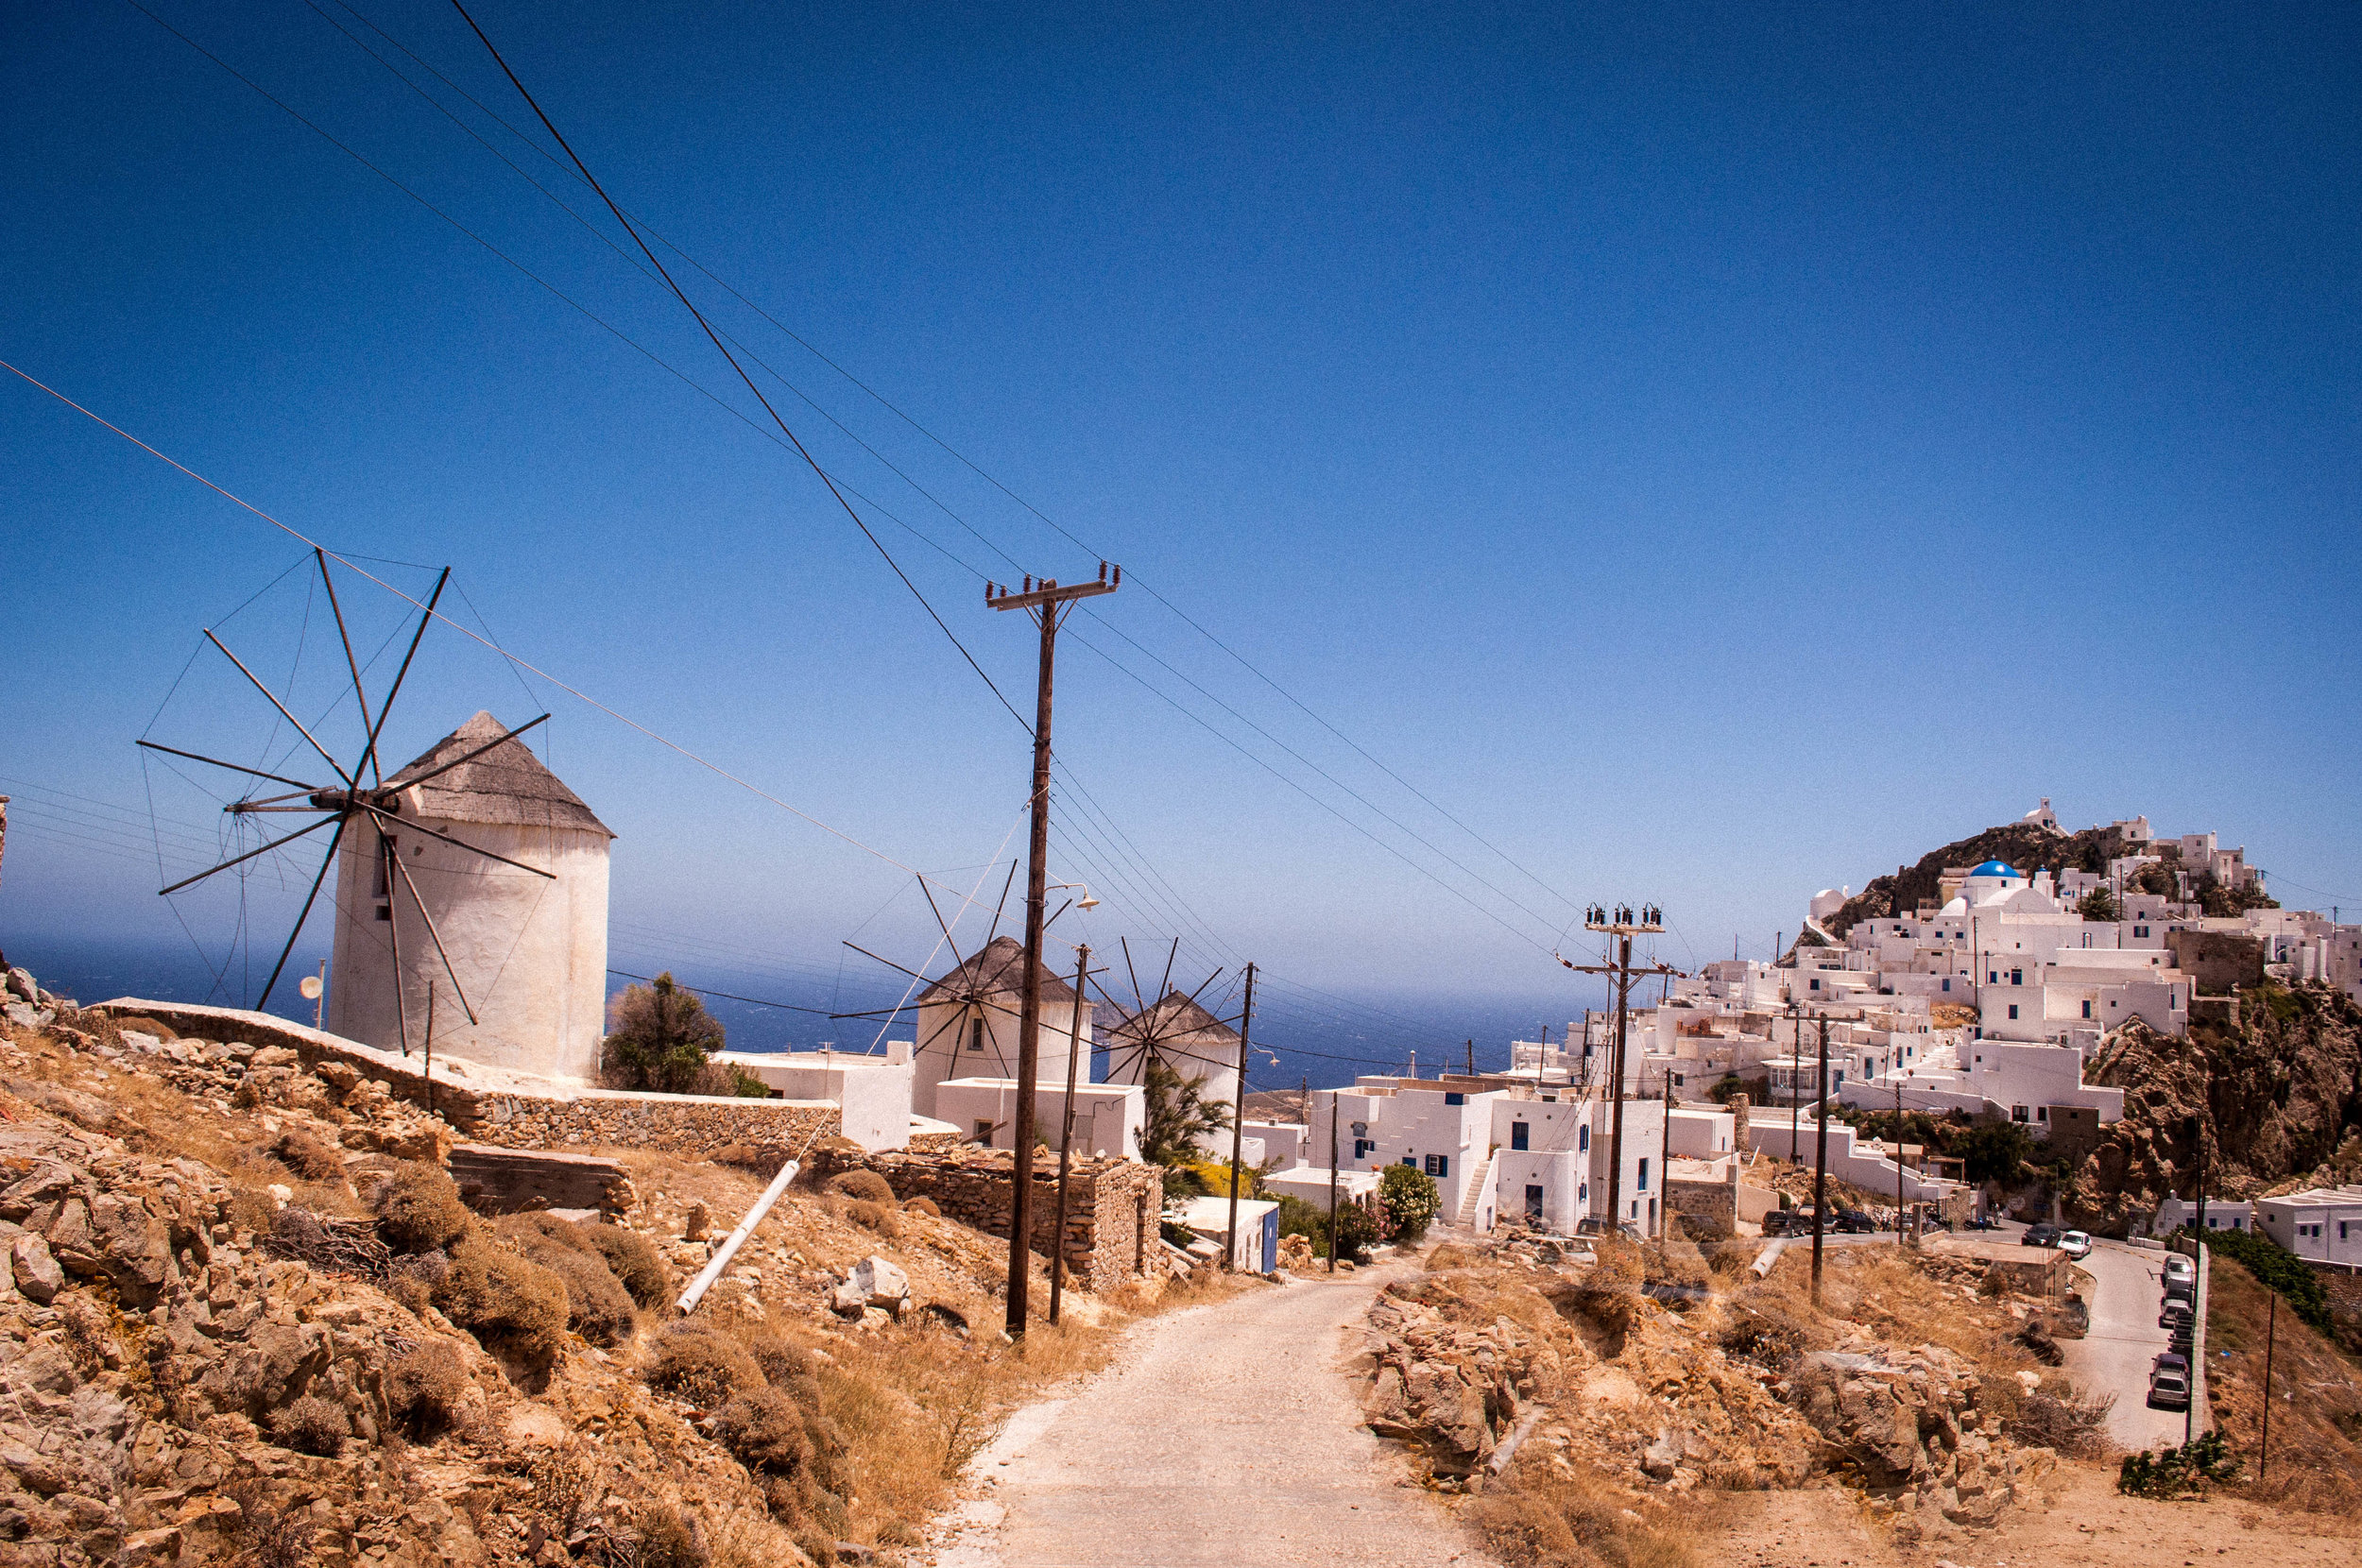 Image of the island of Serifos with its traditional architecture of white buildings and blue dome roofs on the churches and wind mills